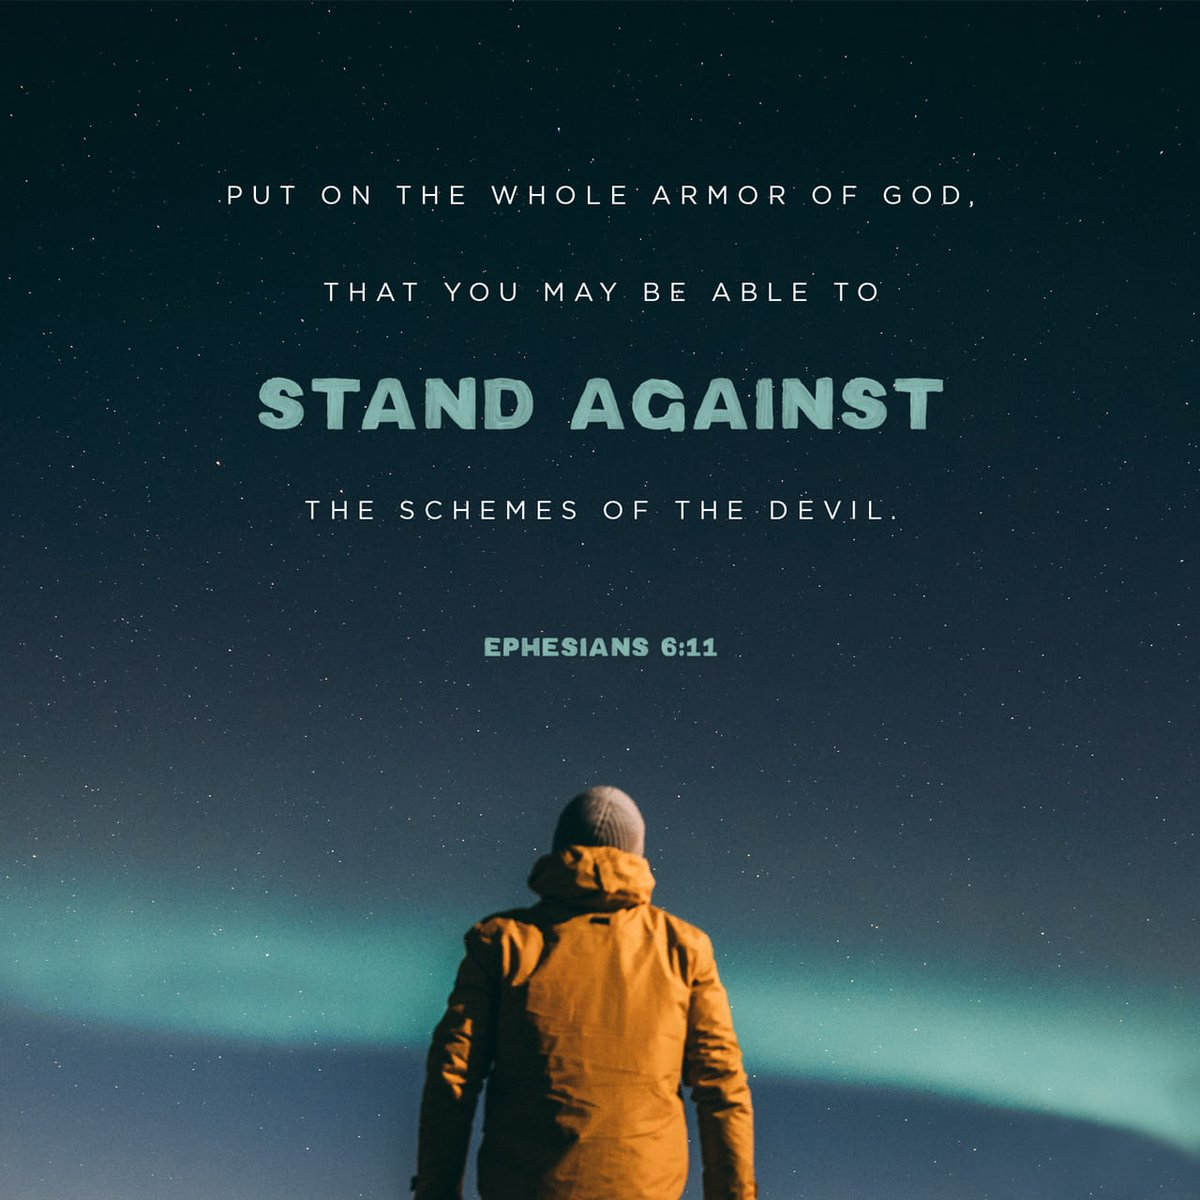 Put on the whole armor of God, that you may be able to stand against the wiles of the devil. Ephesians 6:11 NKJV